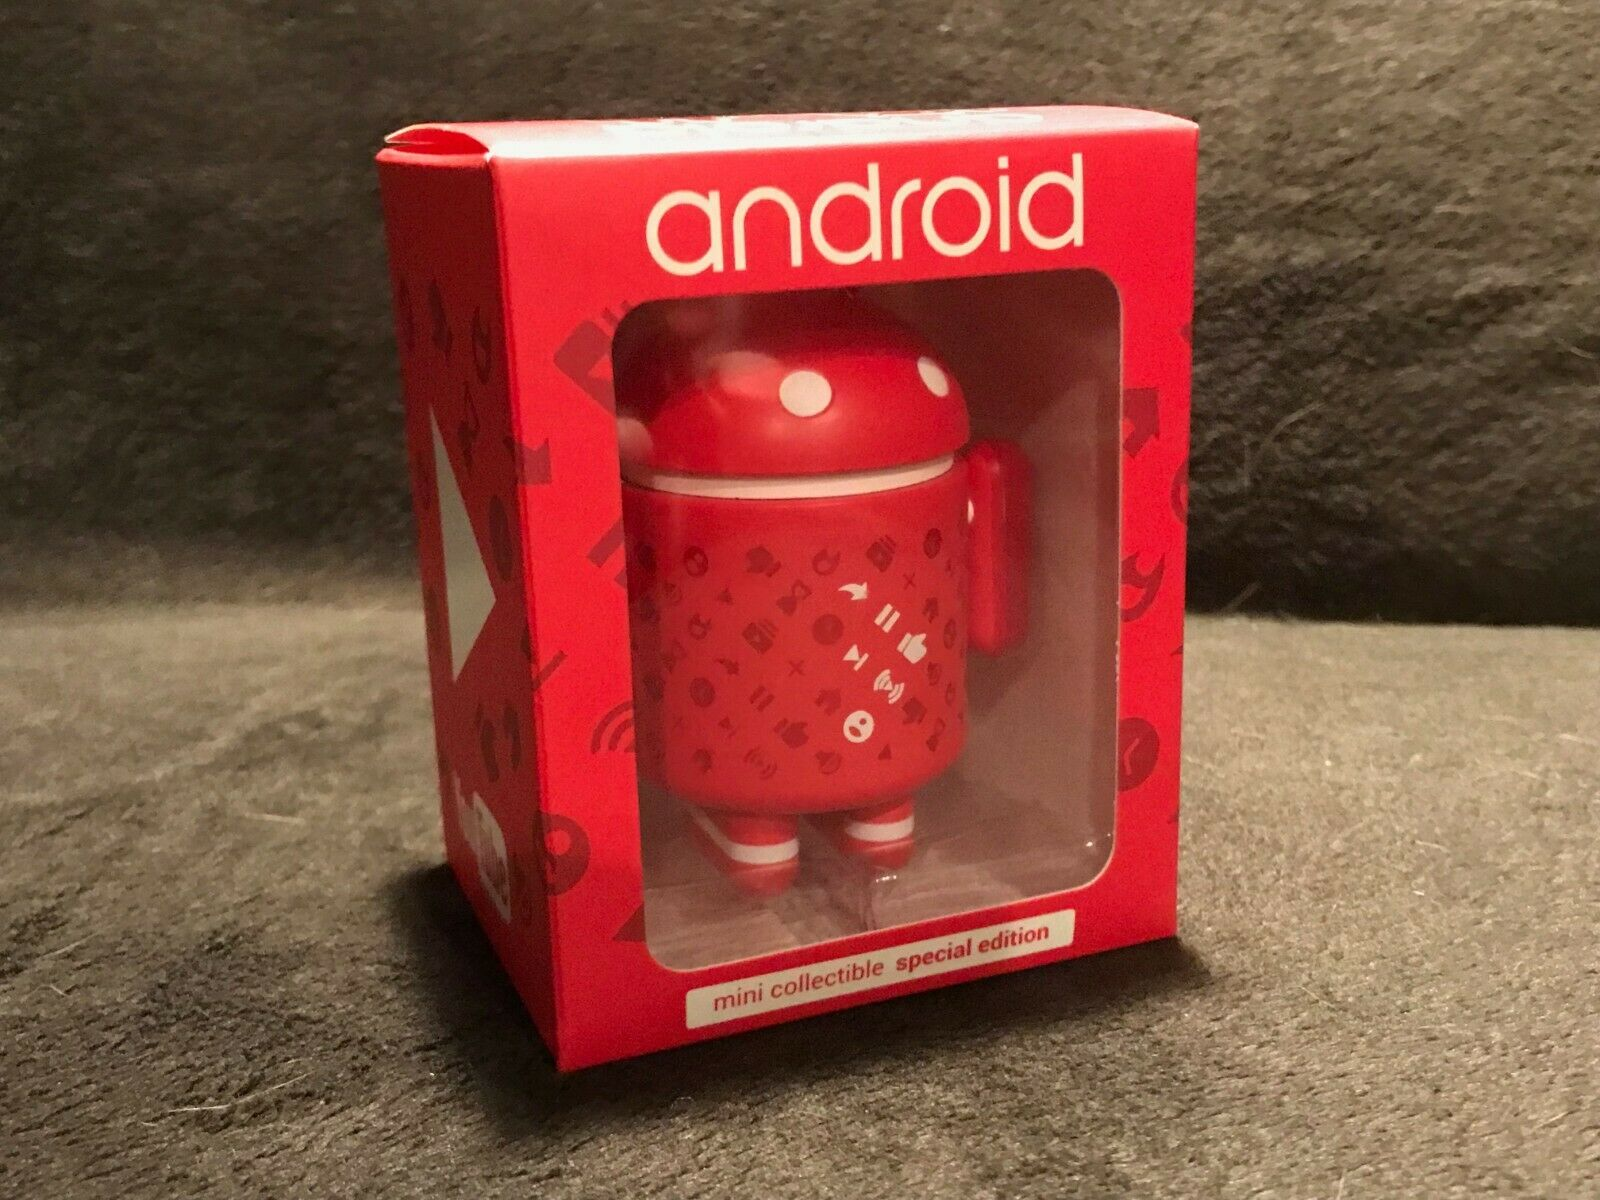 Android Mini Collectible Figure - Google Edition GE -  YouTube